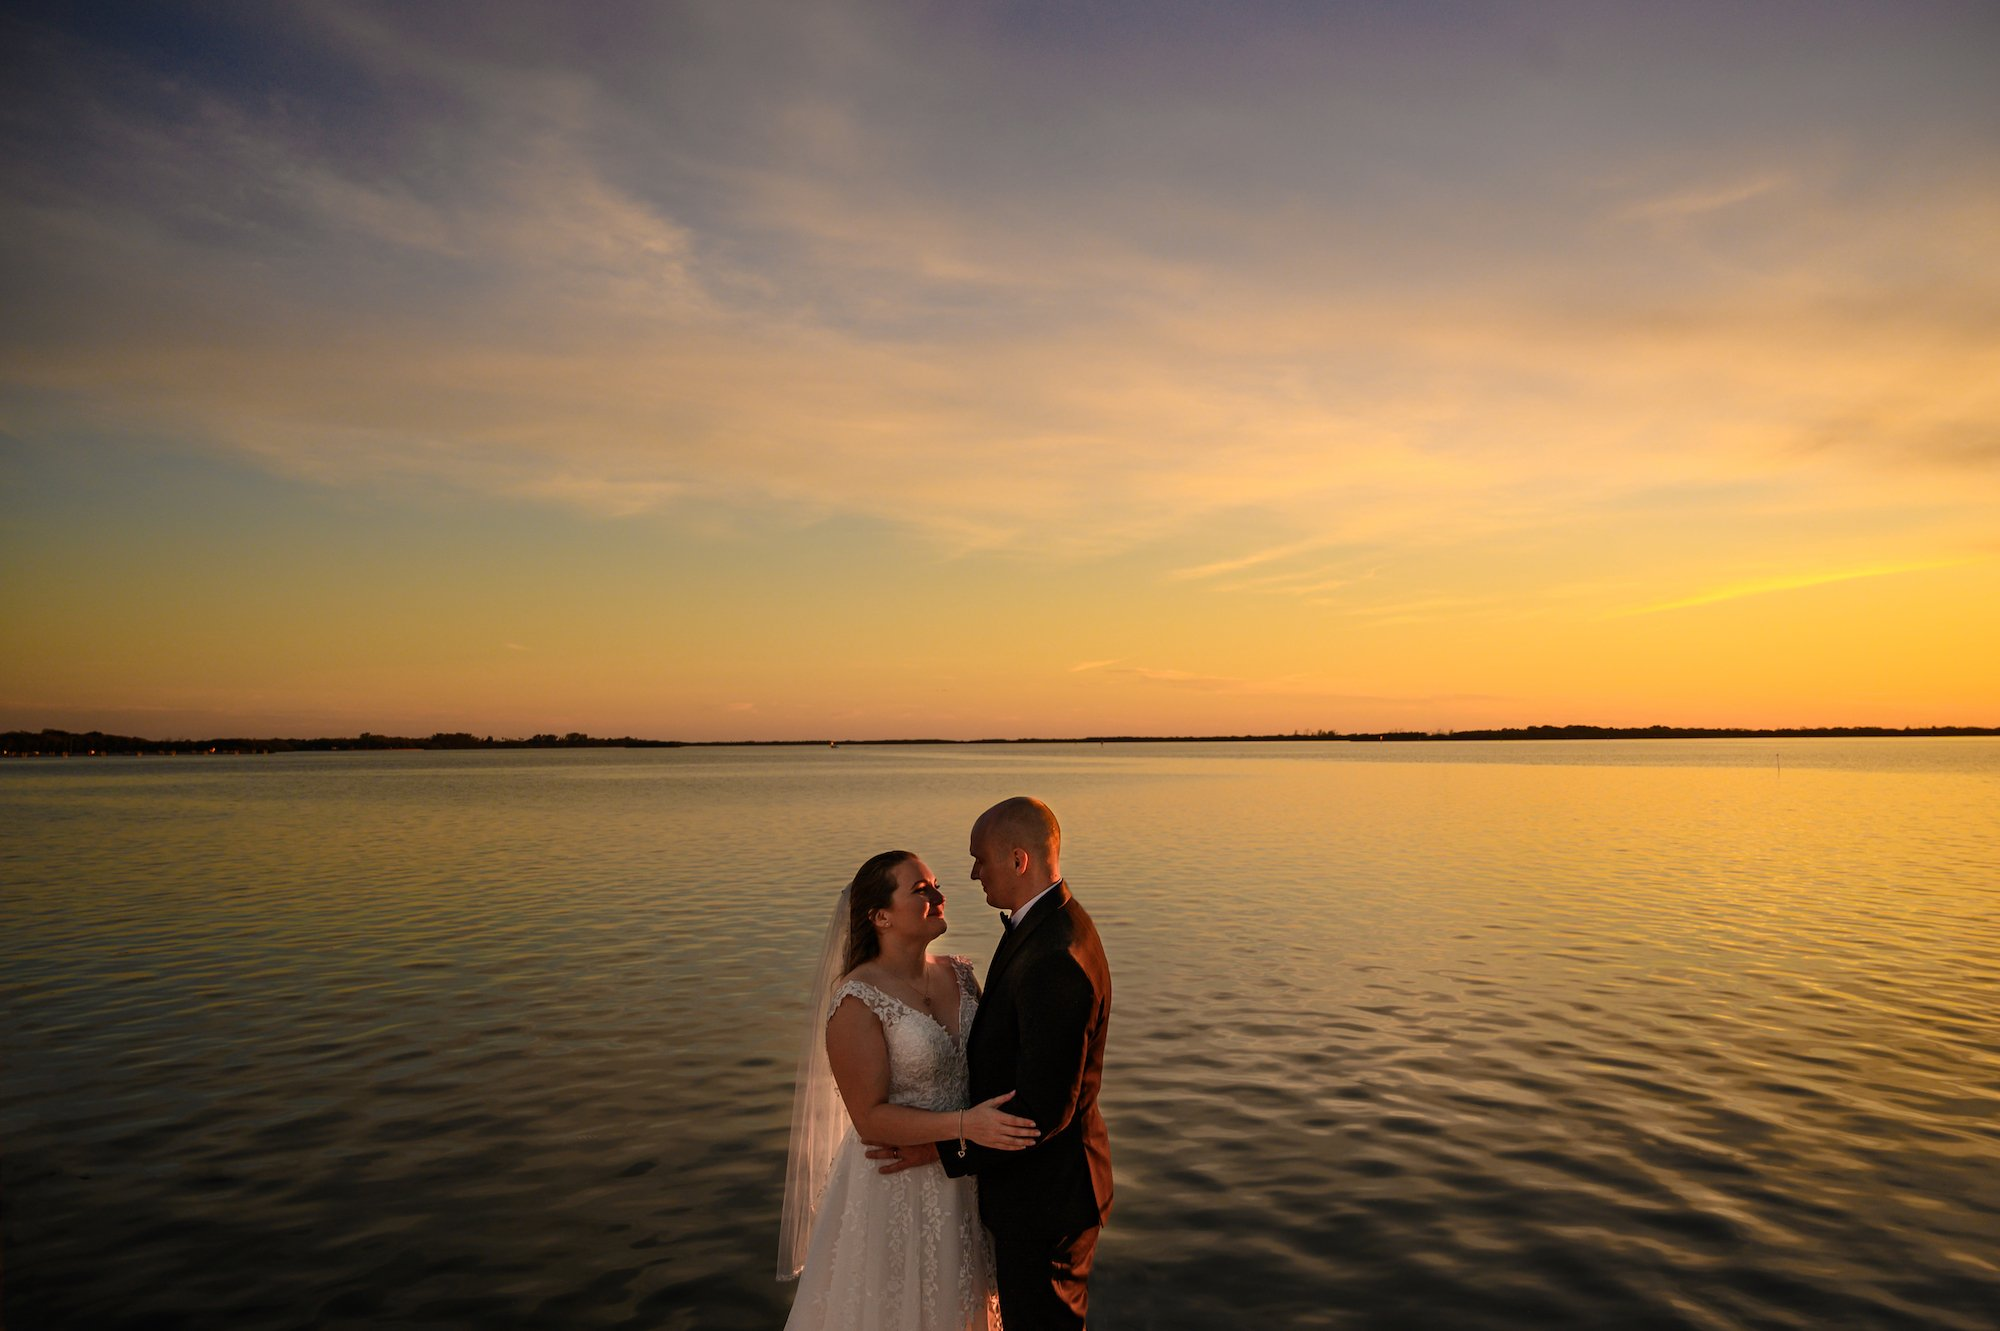 elopement ideas for couples who love water